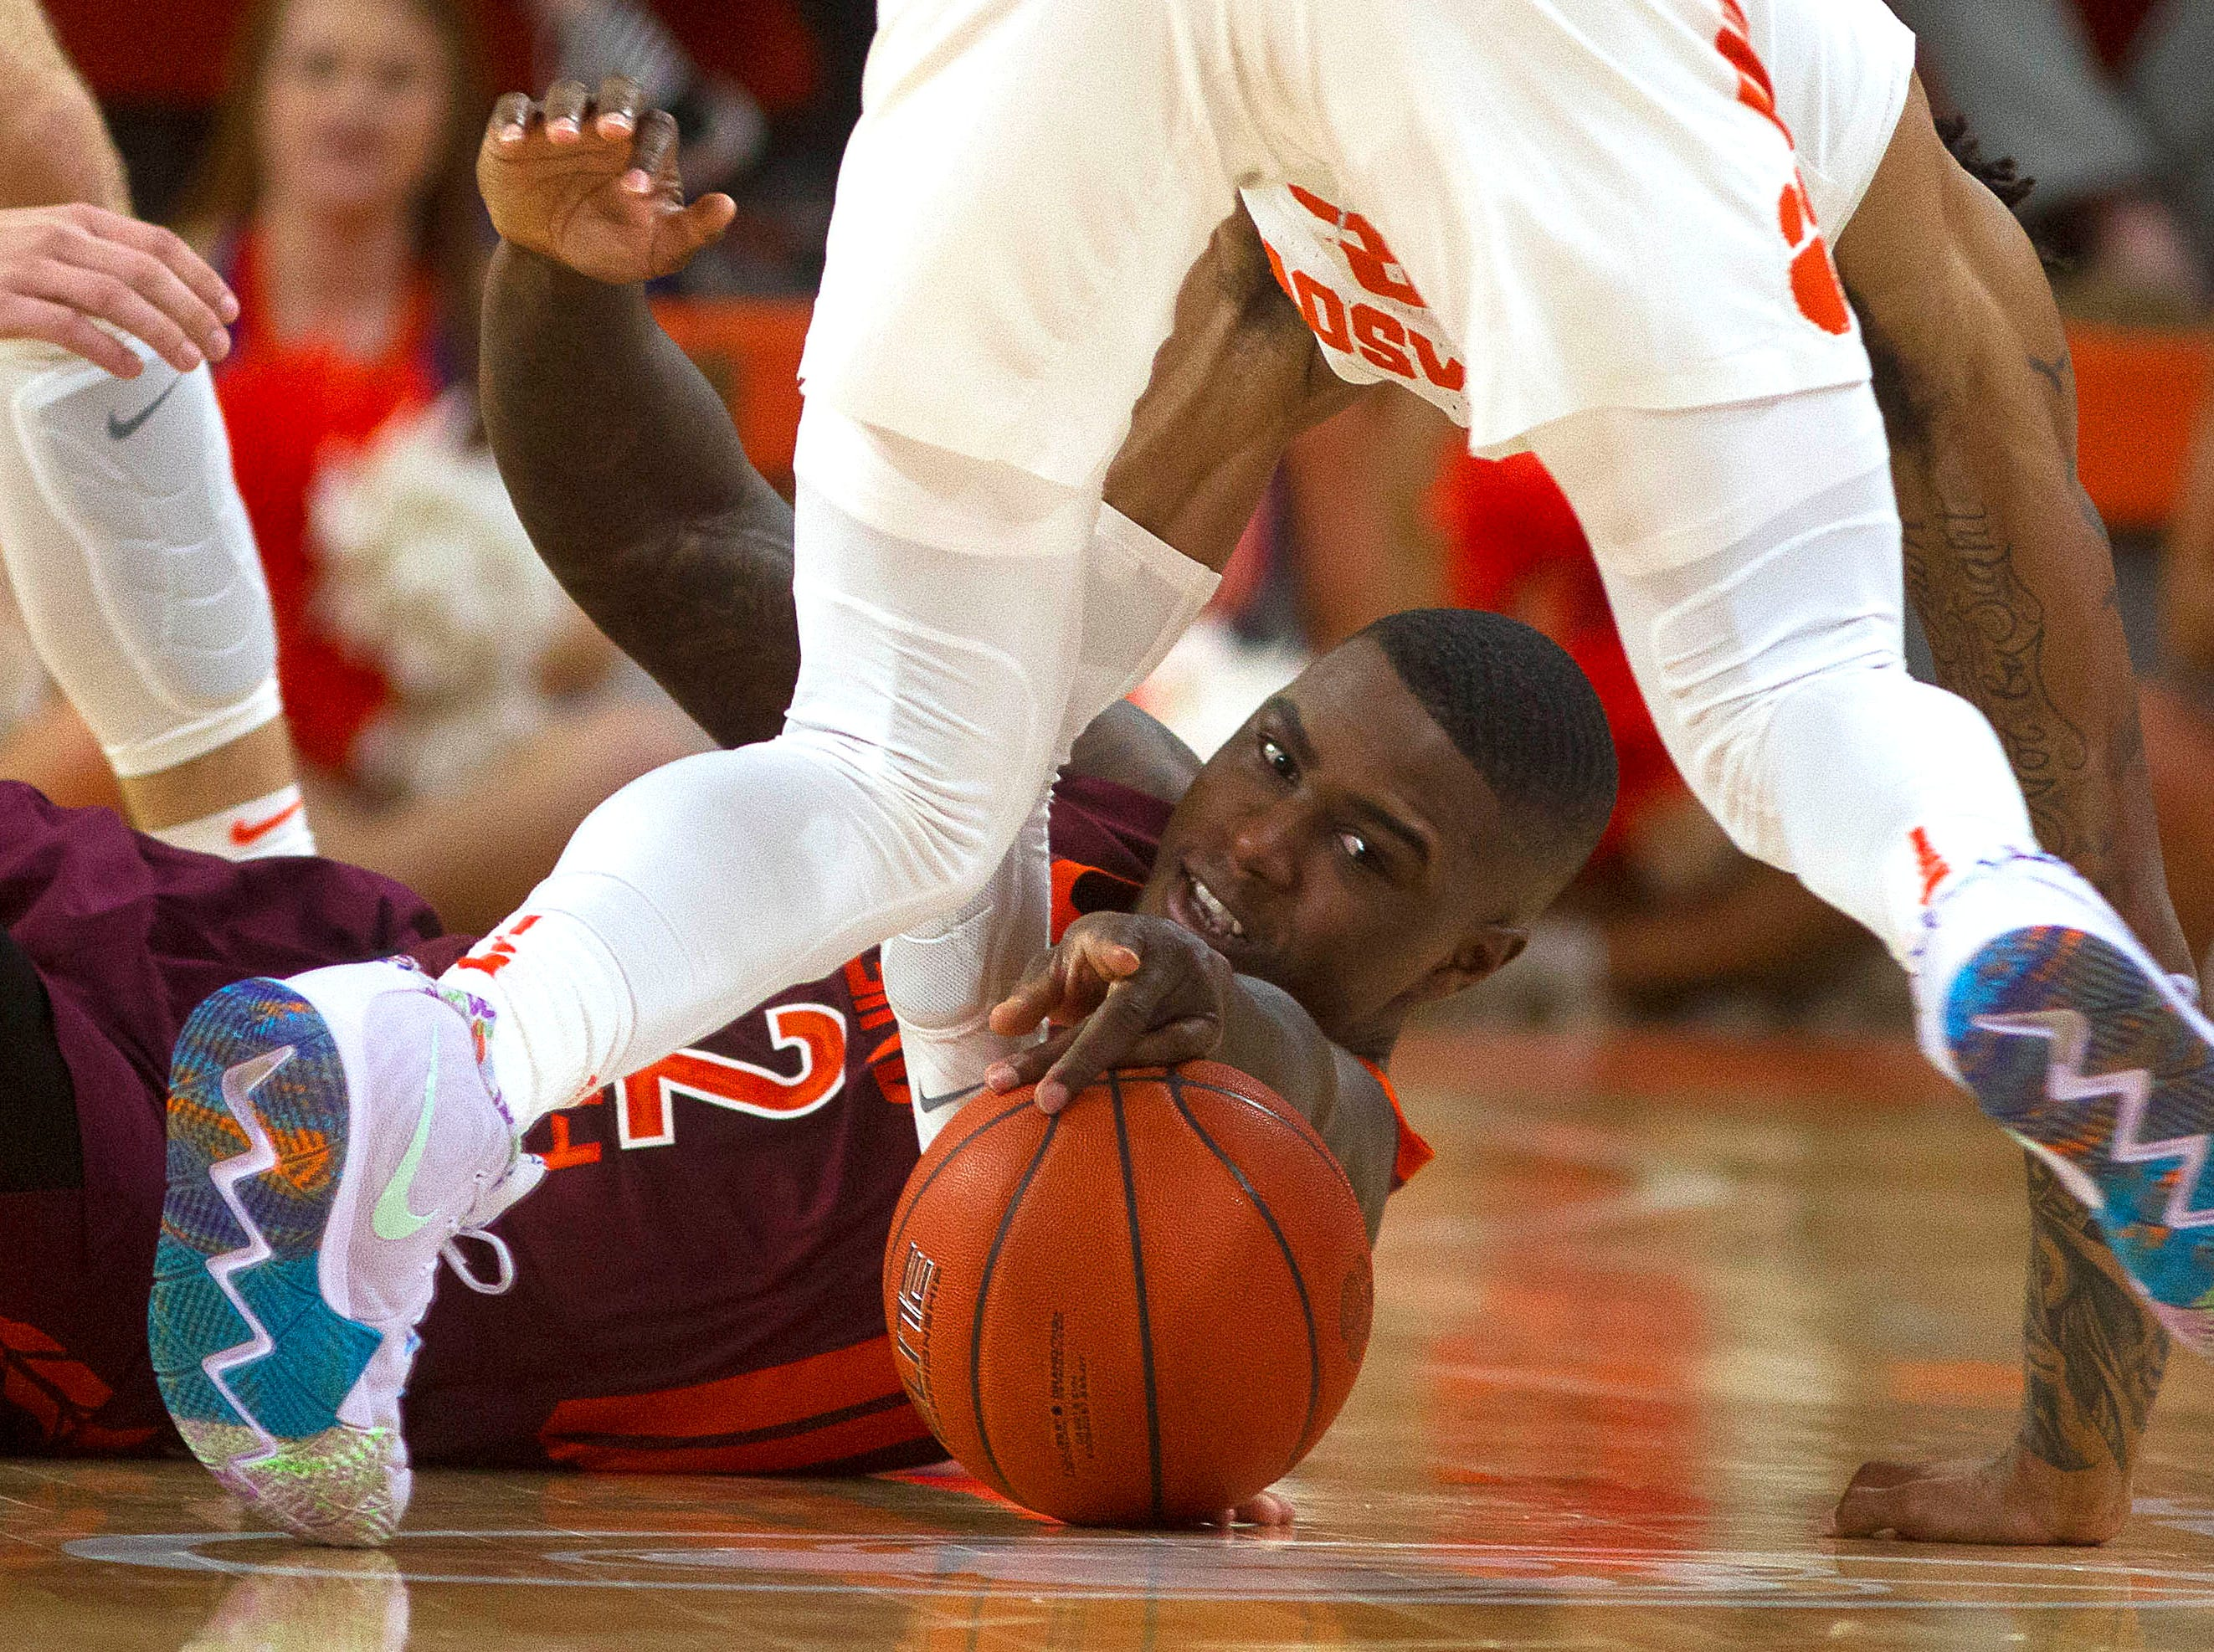 Feb. 9: Virginia Tech Hokies guard Ty Outlaw (42) tries to grab a loose ball against Clemson Tigers guard Marquise Reed (2) during the second half at Littlejohn Coliseum.